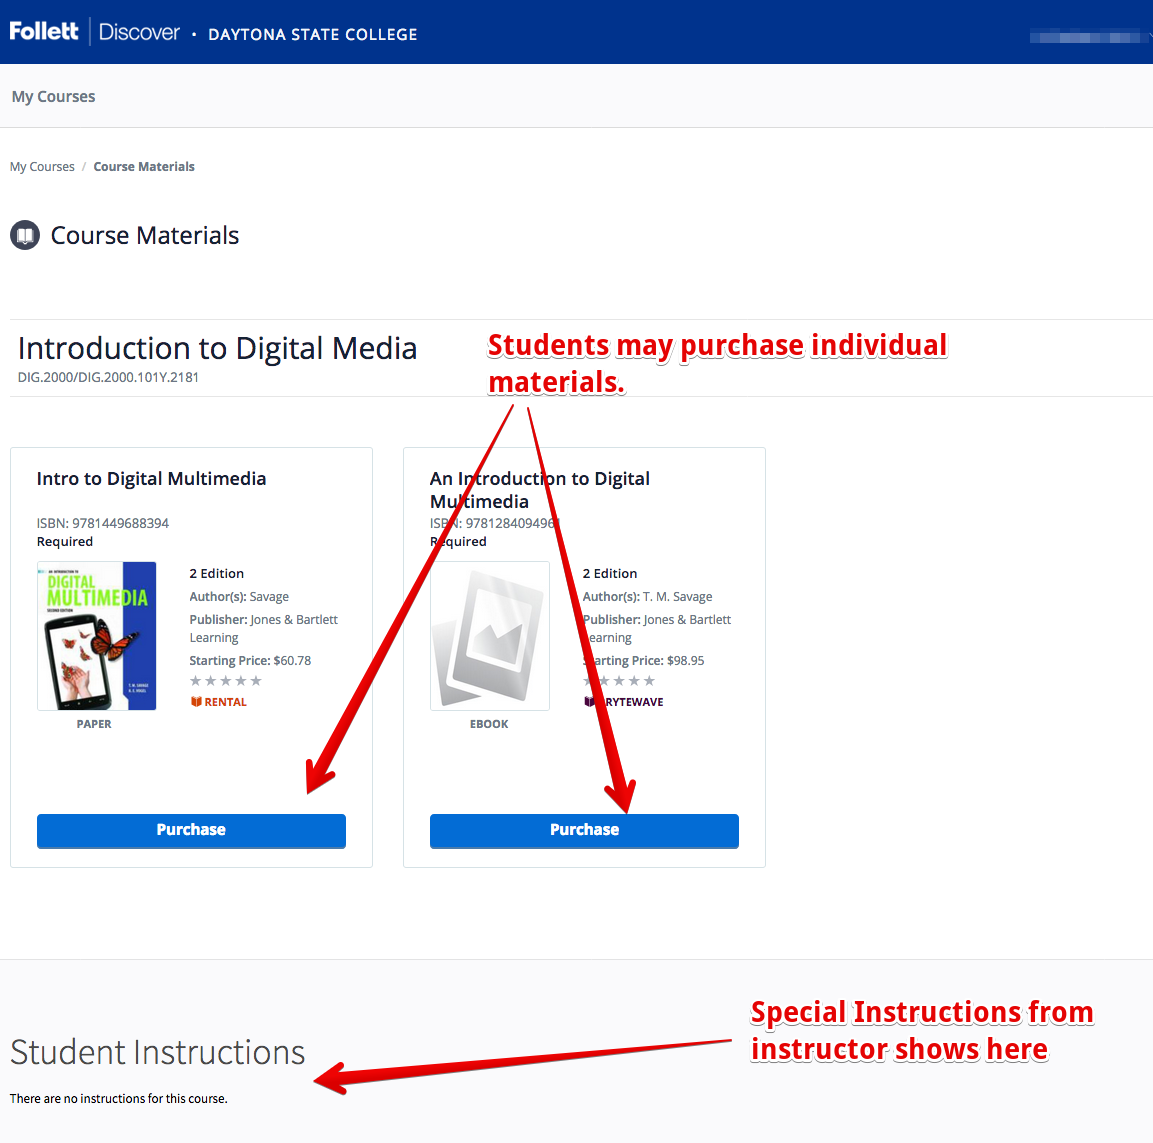 Student view of Follett Discover showing individual course materials and instructor instructions